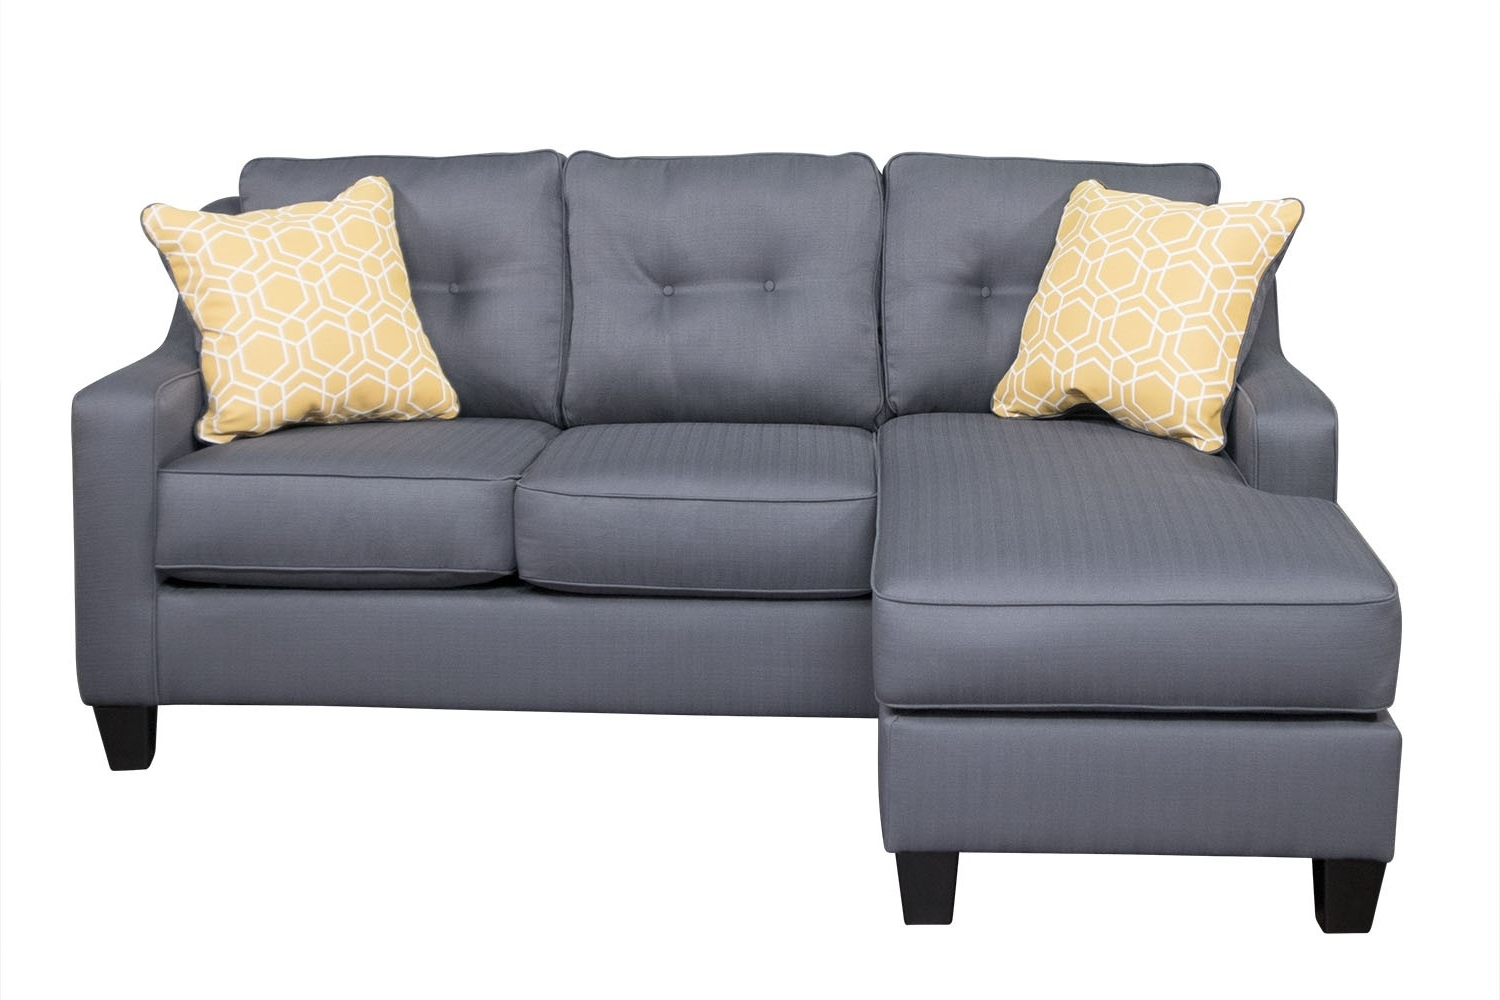 Mor Furniture For Less (View 11 of 15)